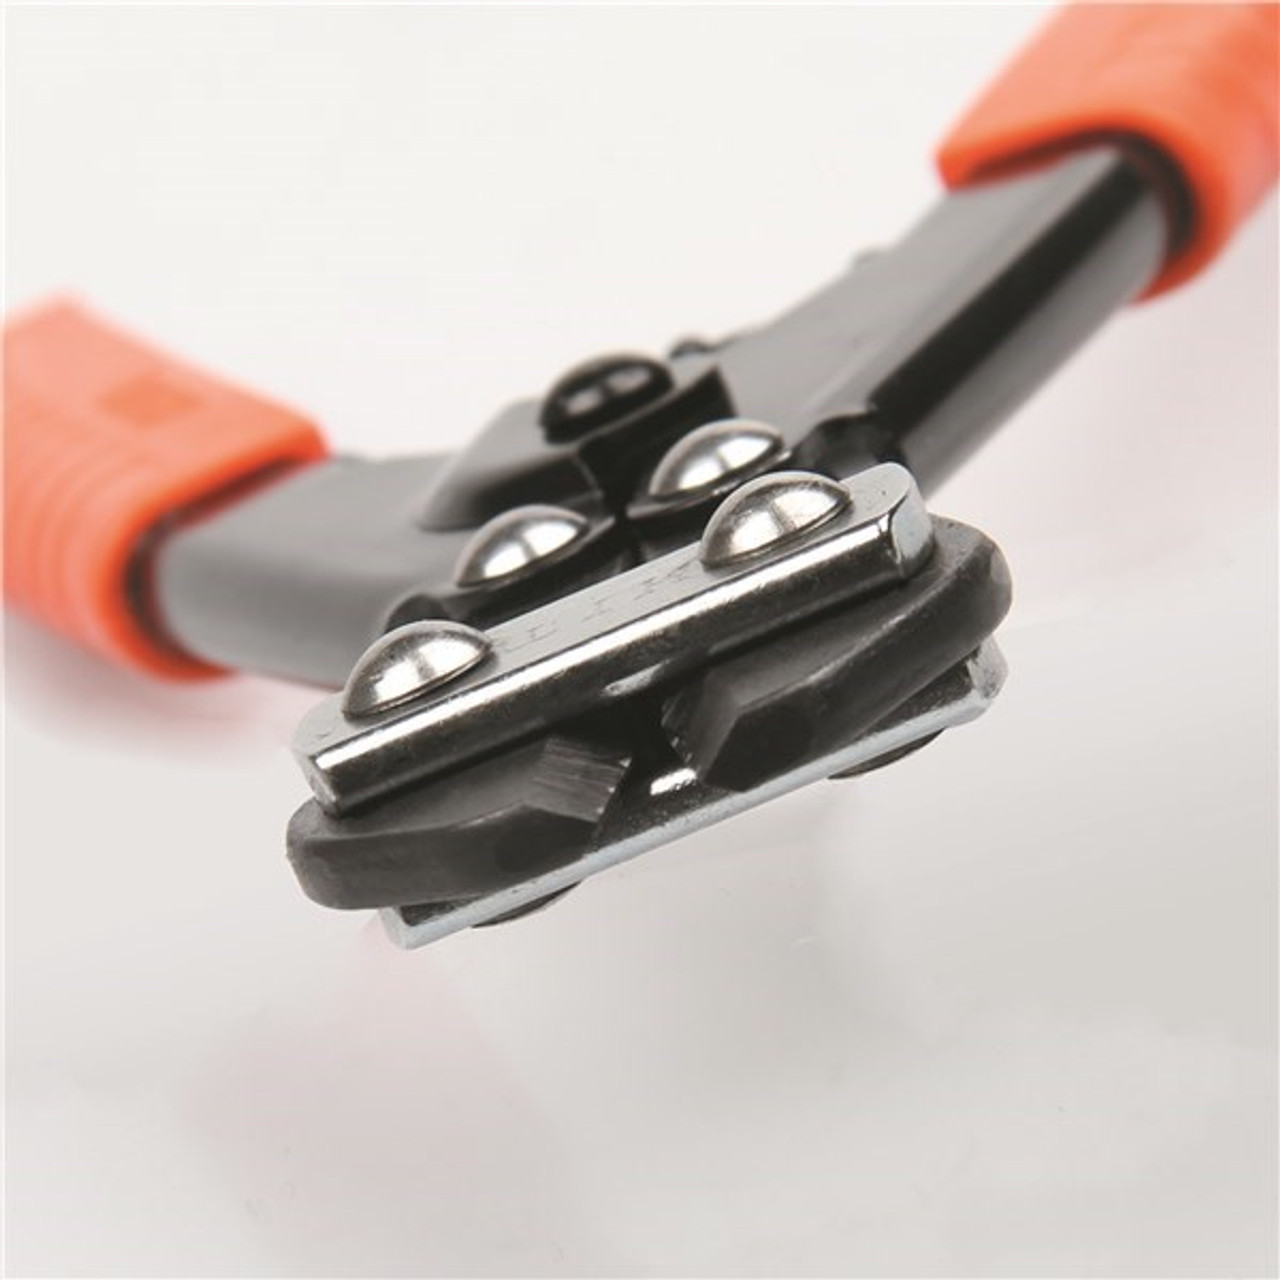 Mini Bolt wire cutters 200mm HIT Made in Japan